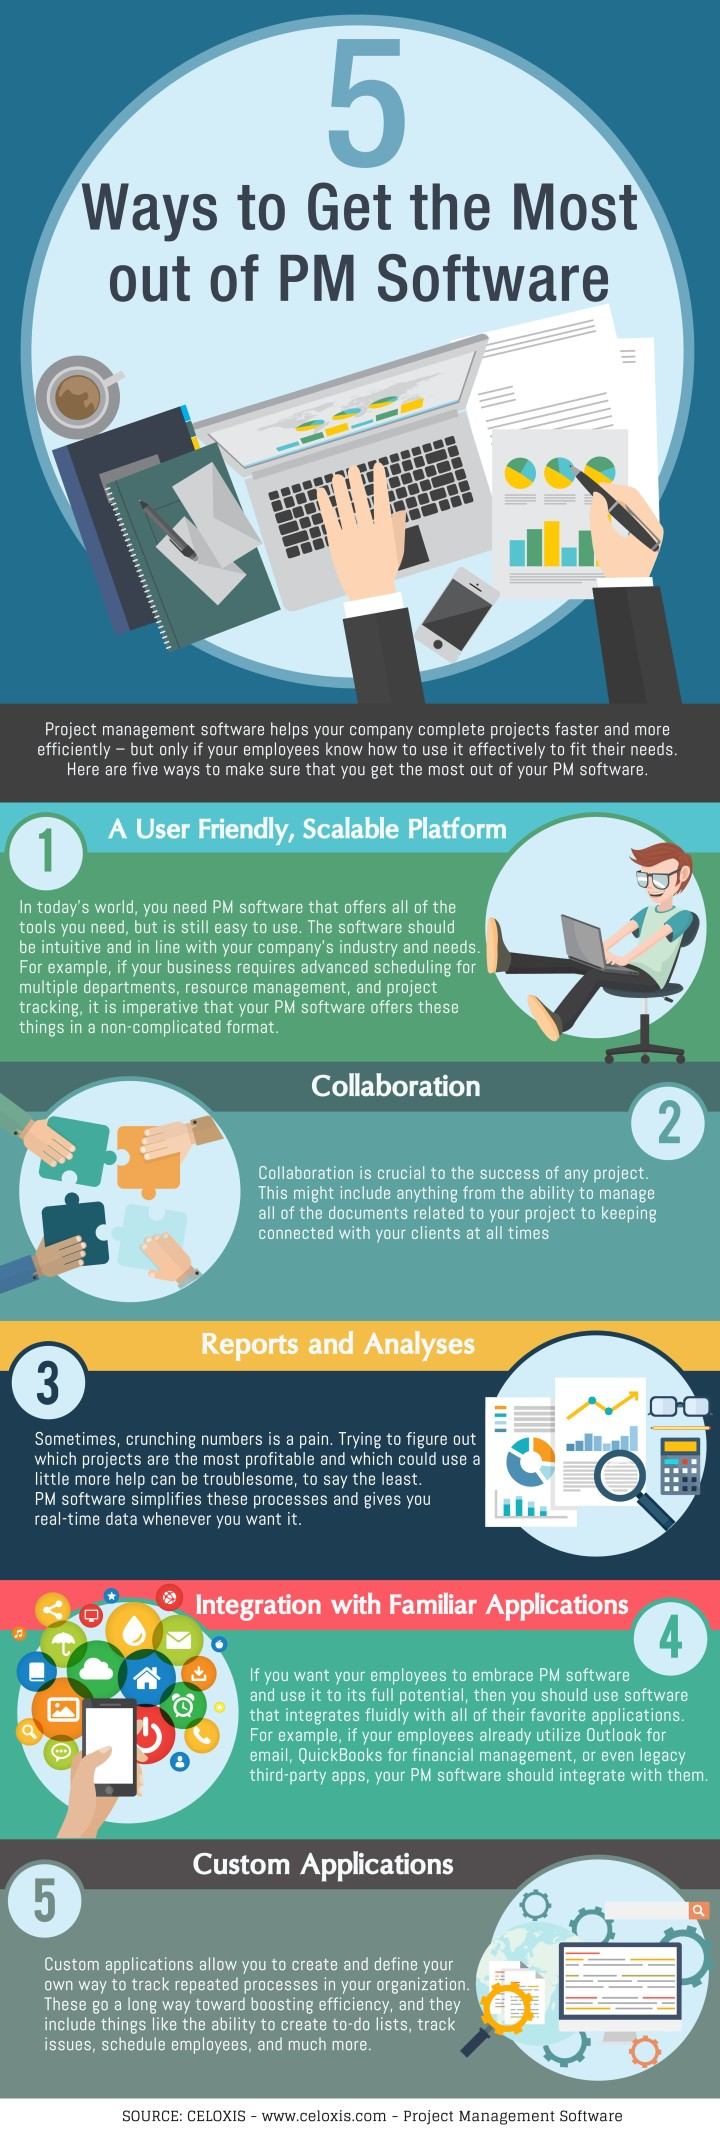 Infographic: 5 ways to get the mot out of your PM software